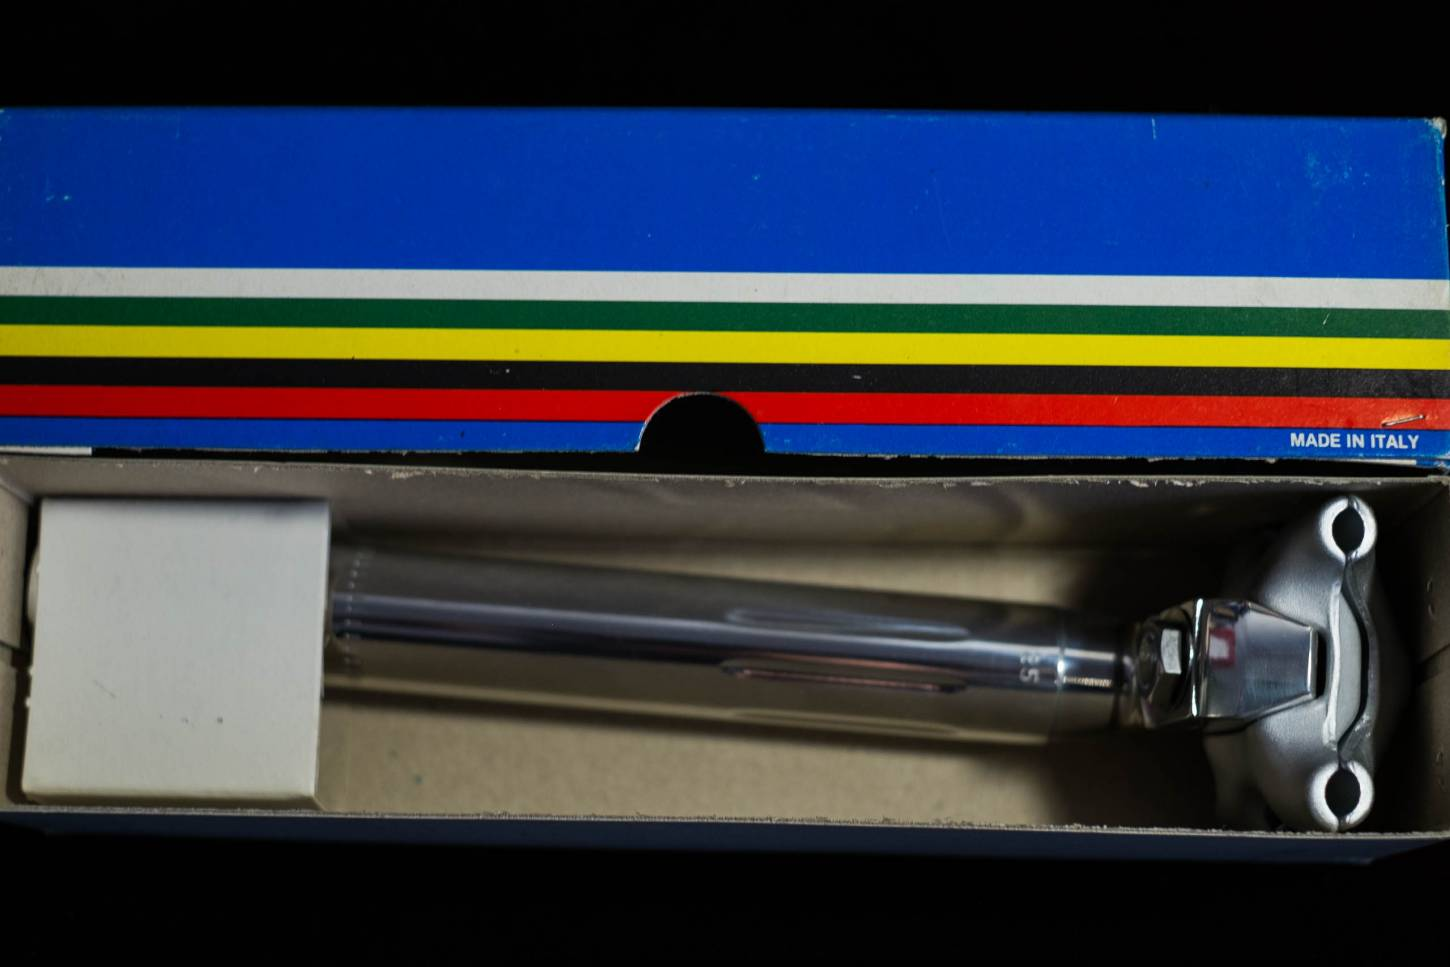 NOS Campagnolo Super Record seat post 25.0 mm ribbed aluminium polished Seatpost Vintage Rennra